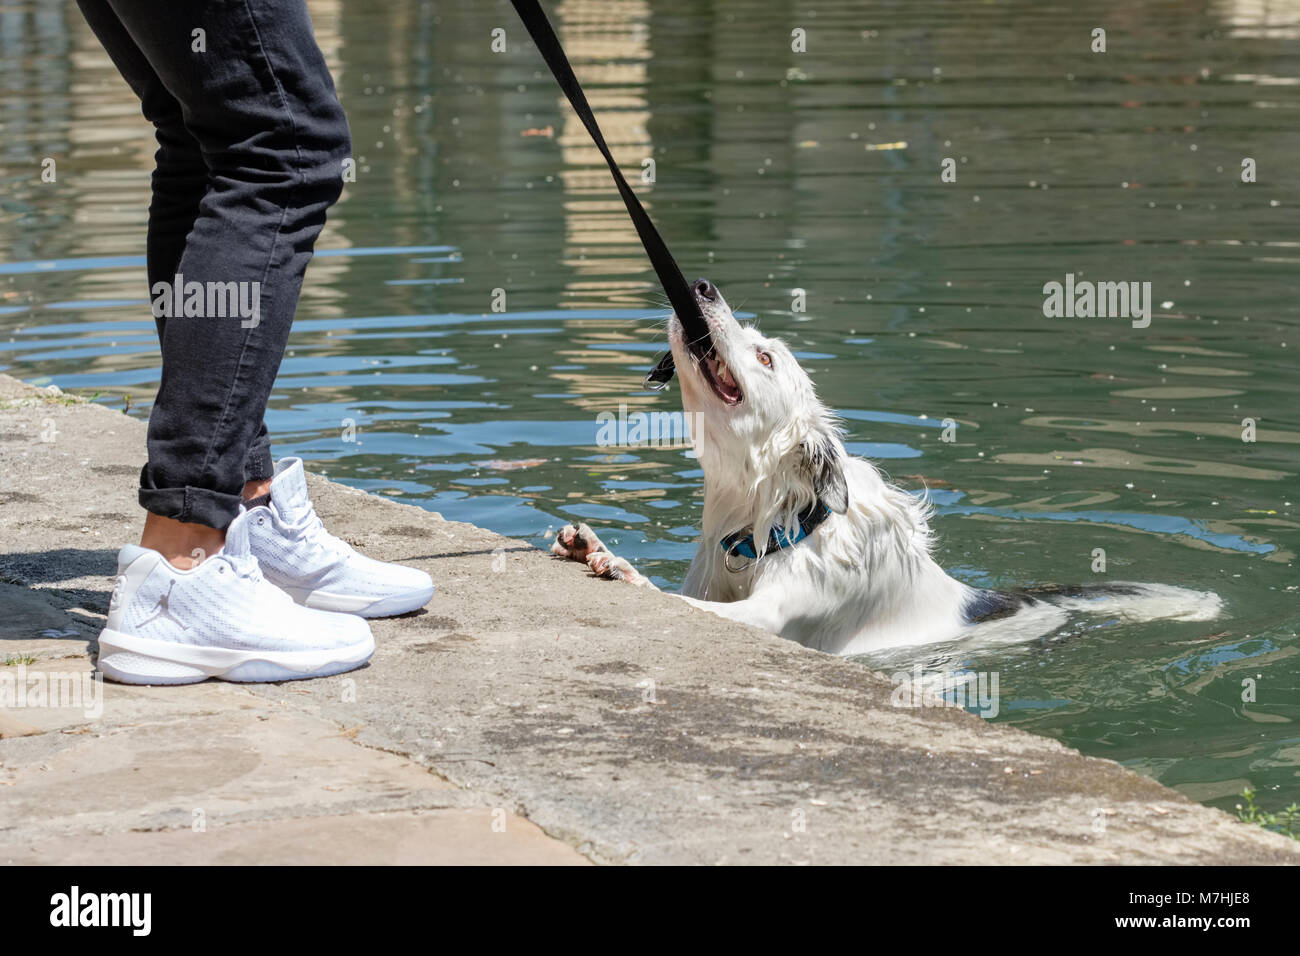 Pet Dog in and out of the river Ibaizabal, Durango, Vizcaya, Pais Vasco, Spain, - Stock Image